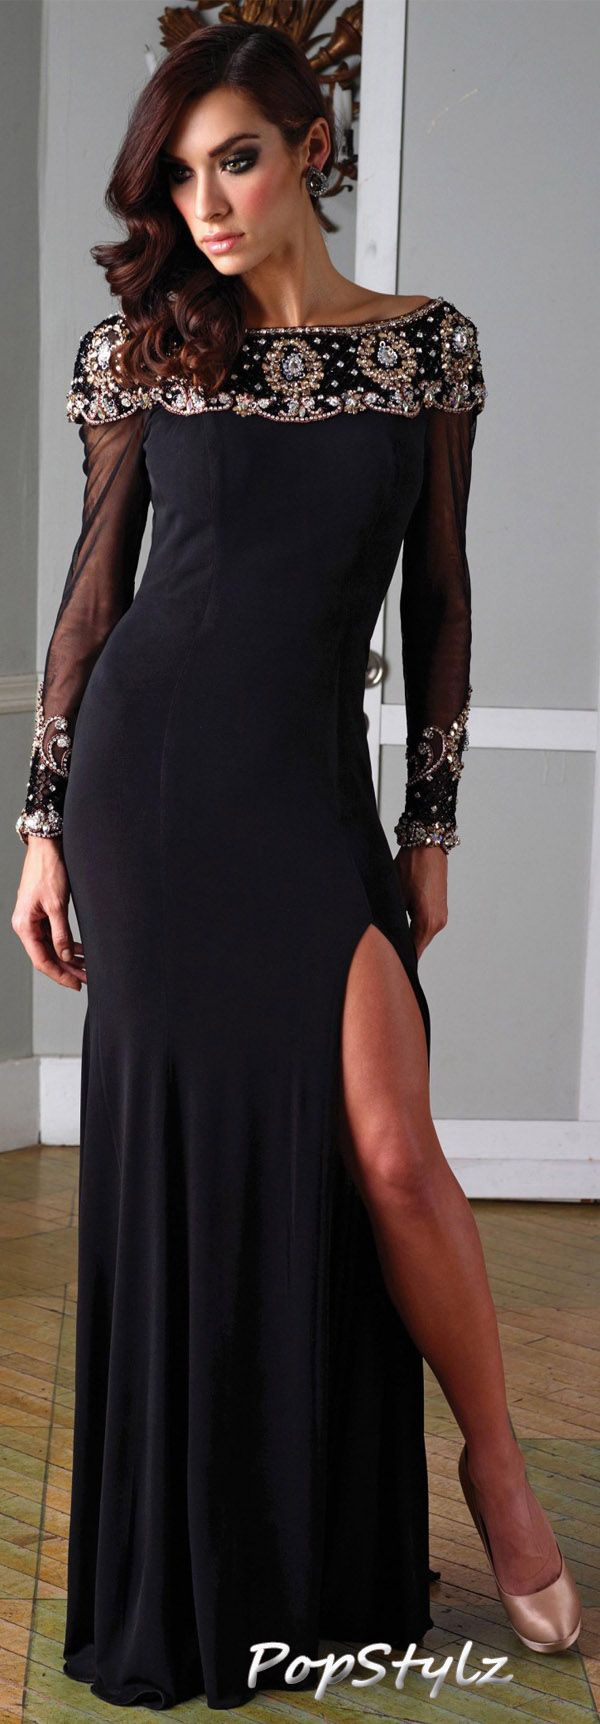 Terani couture slinky black dress beautiful dress not caring for